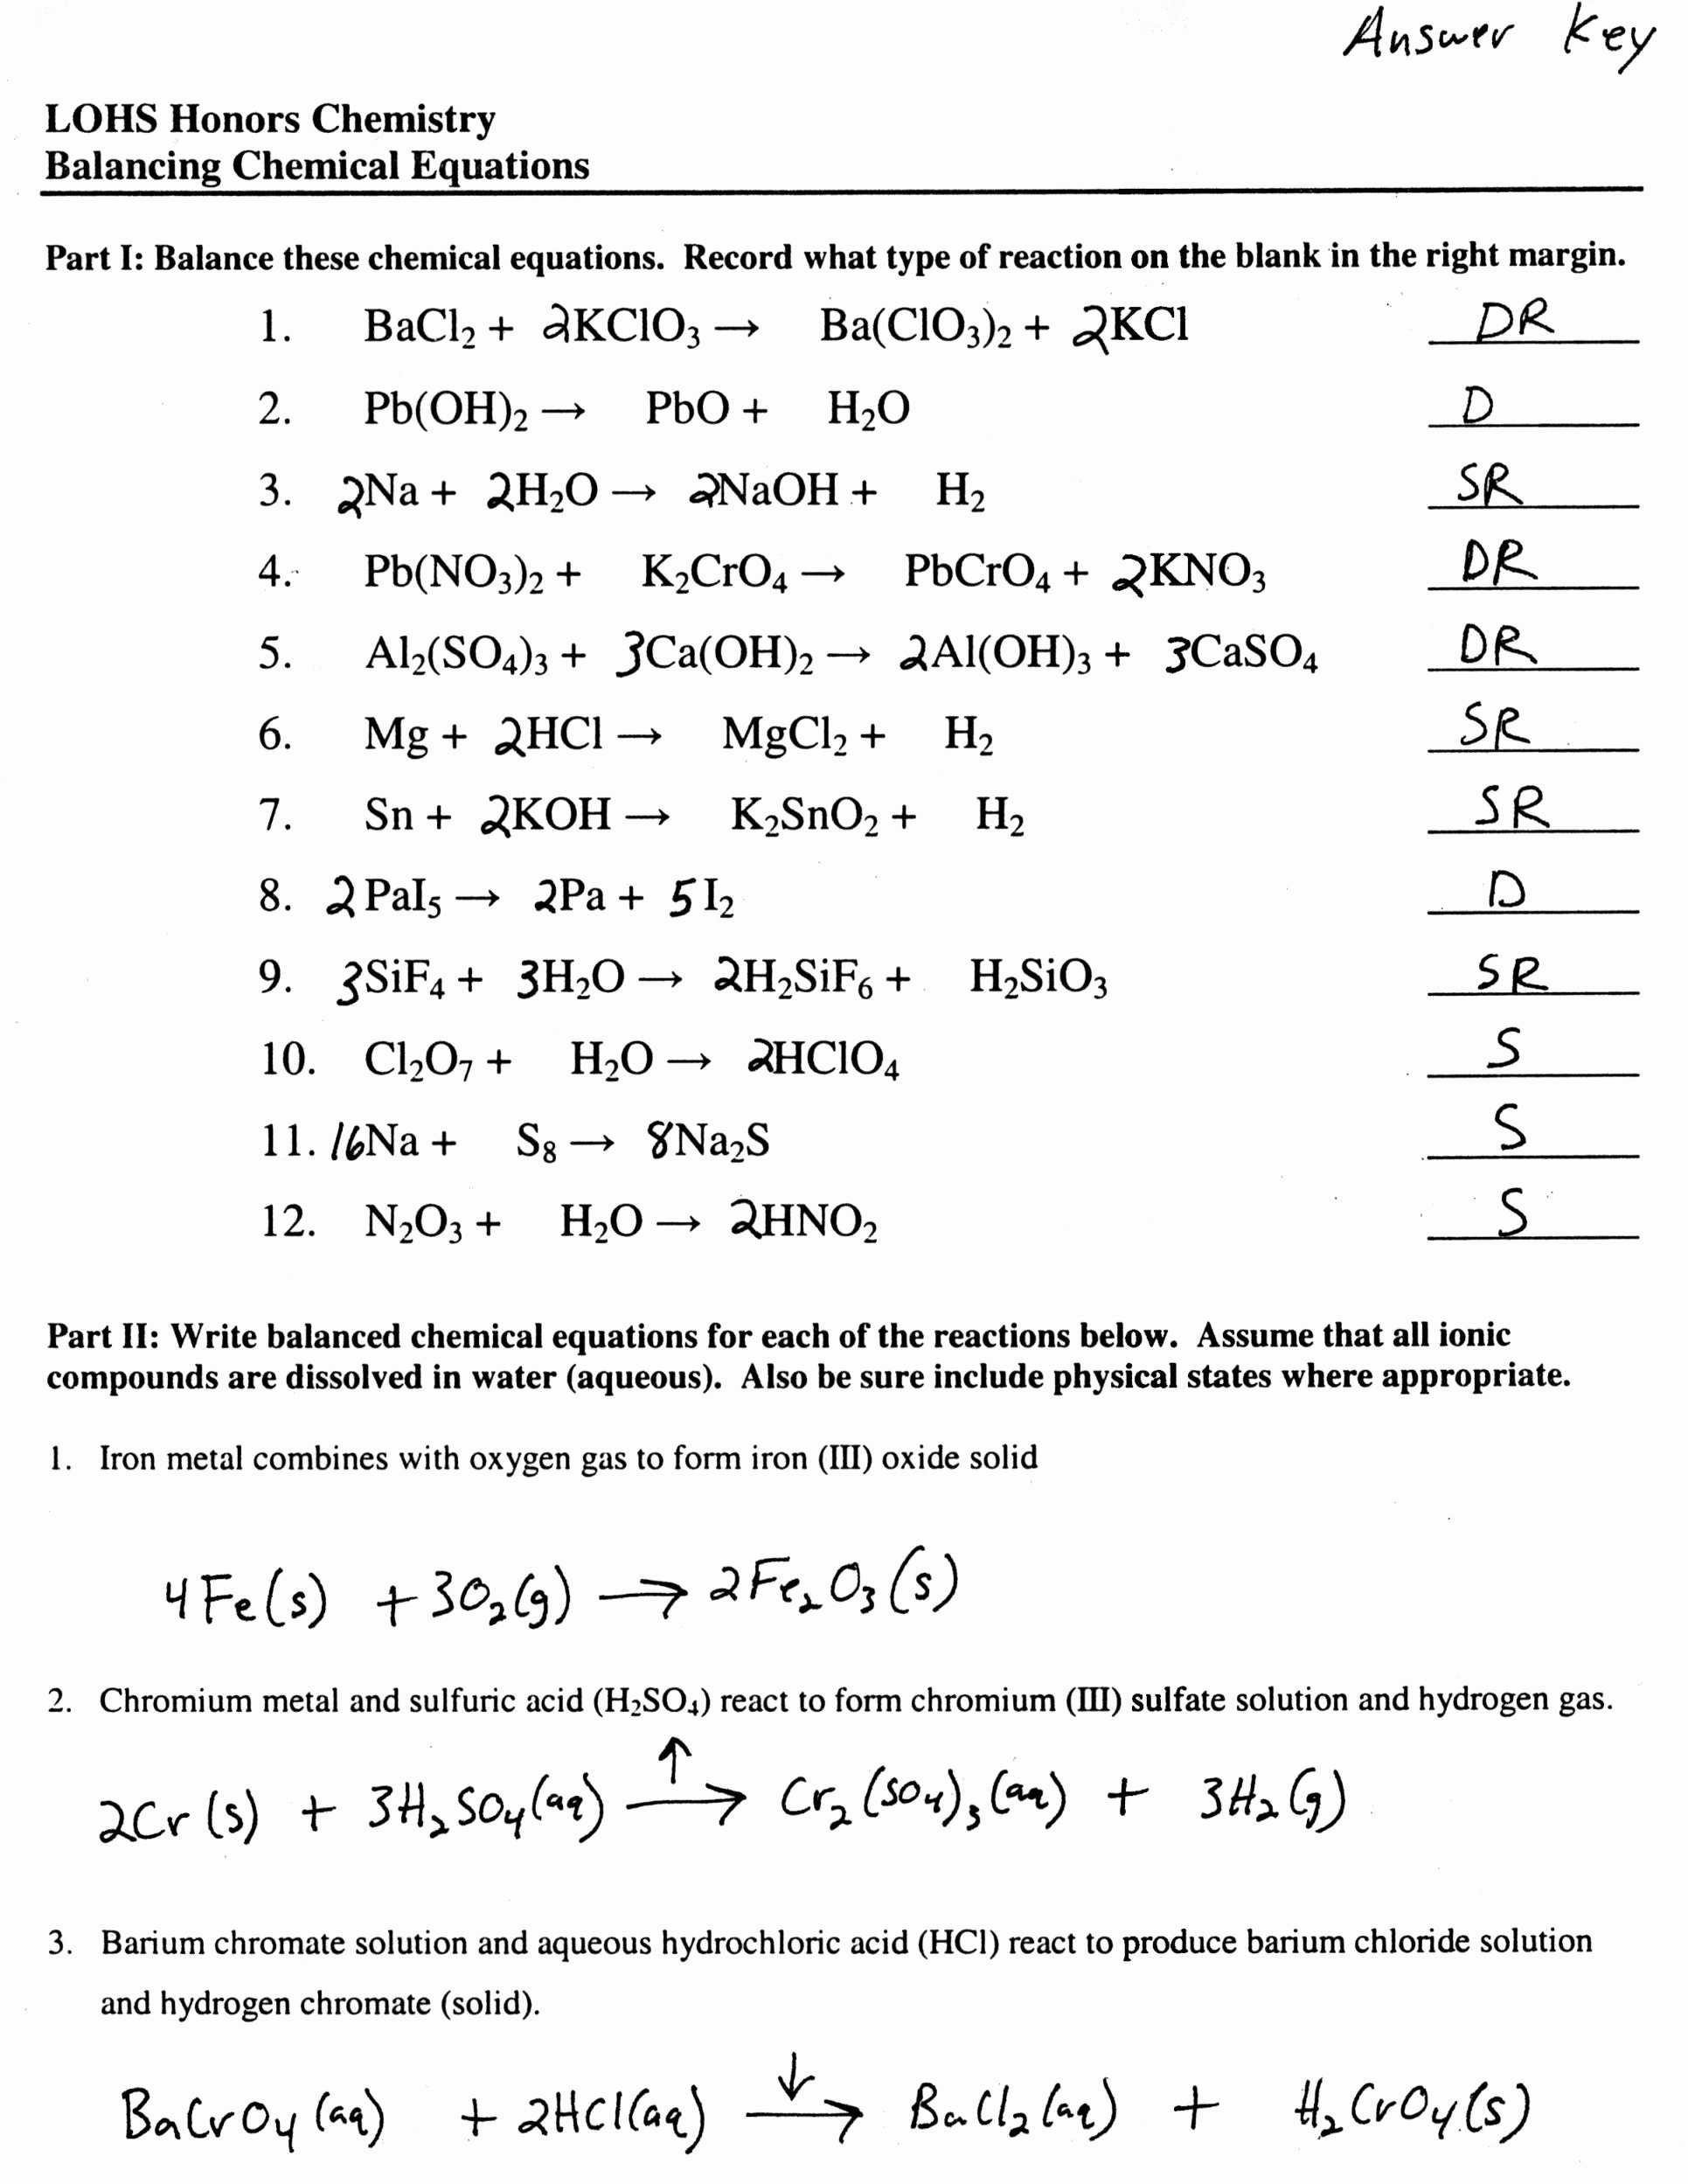 Nuclear Equations Worksheet Answers Elegant Balancing